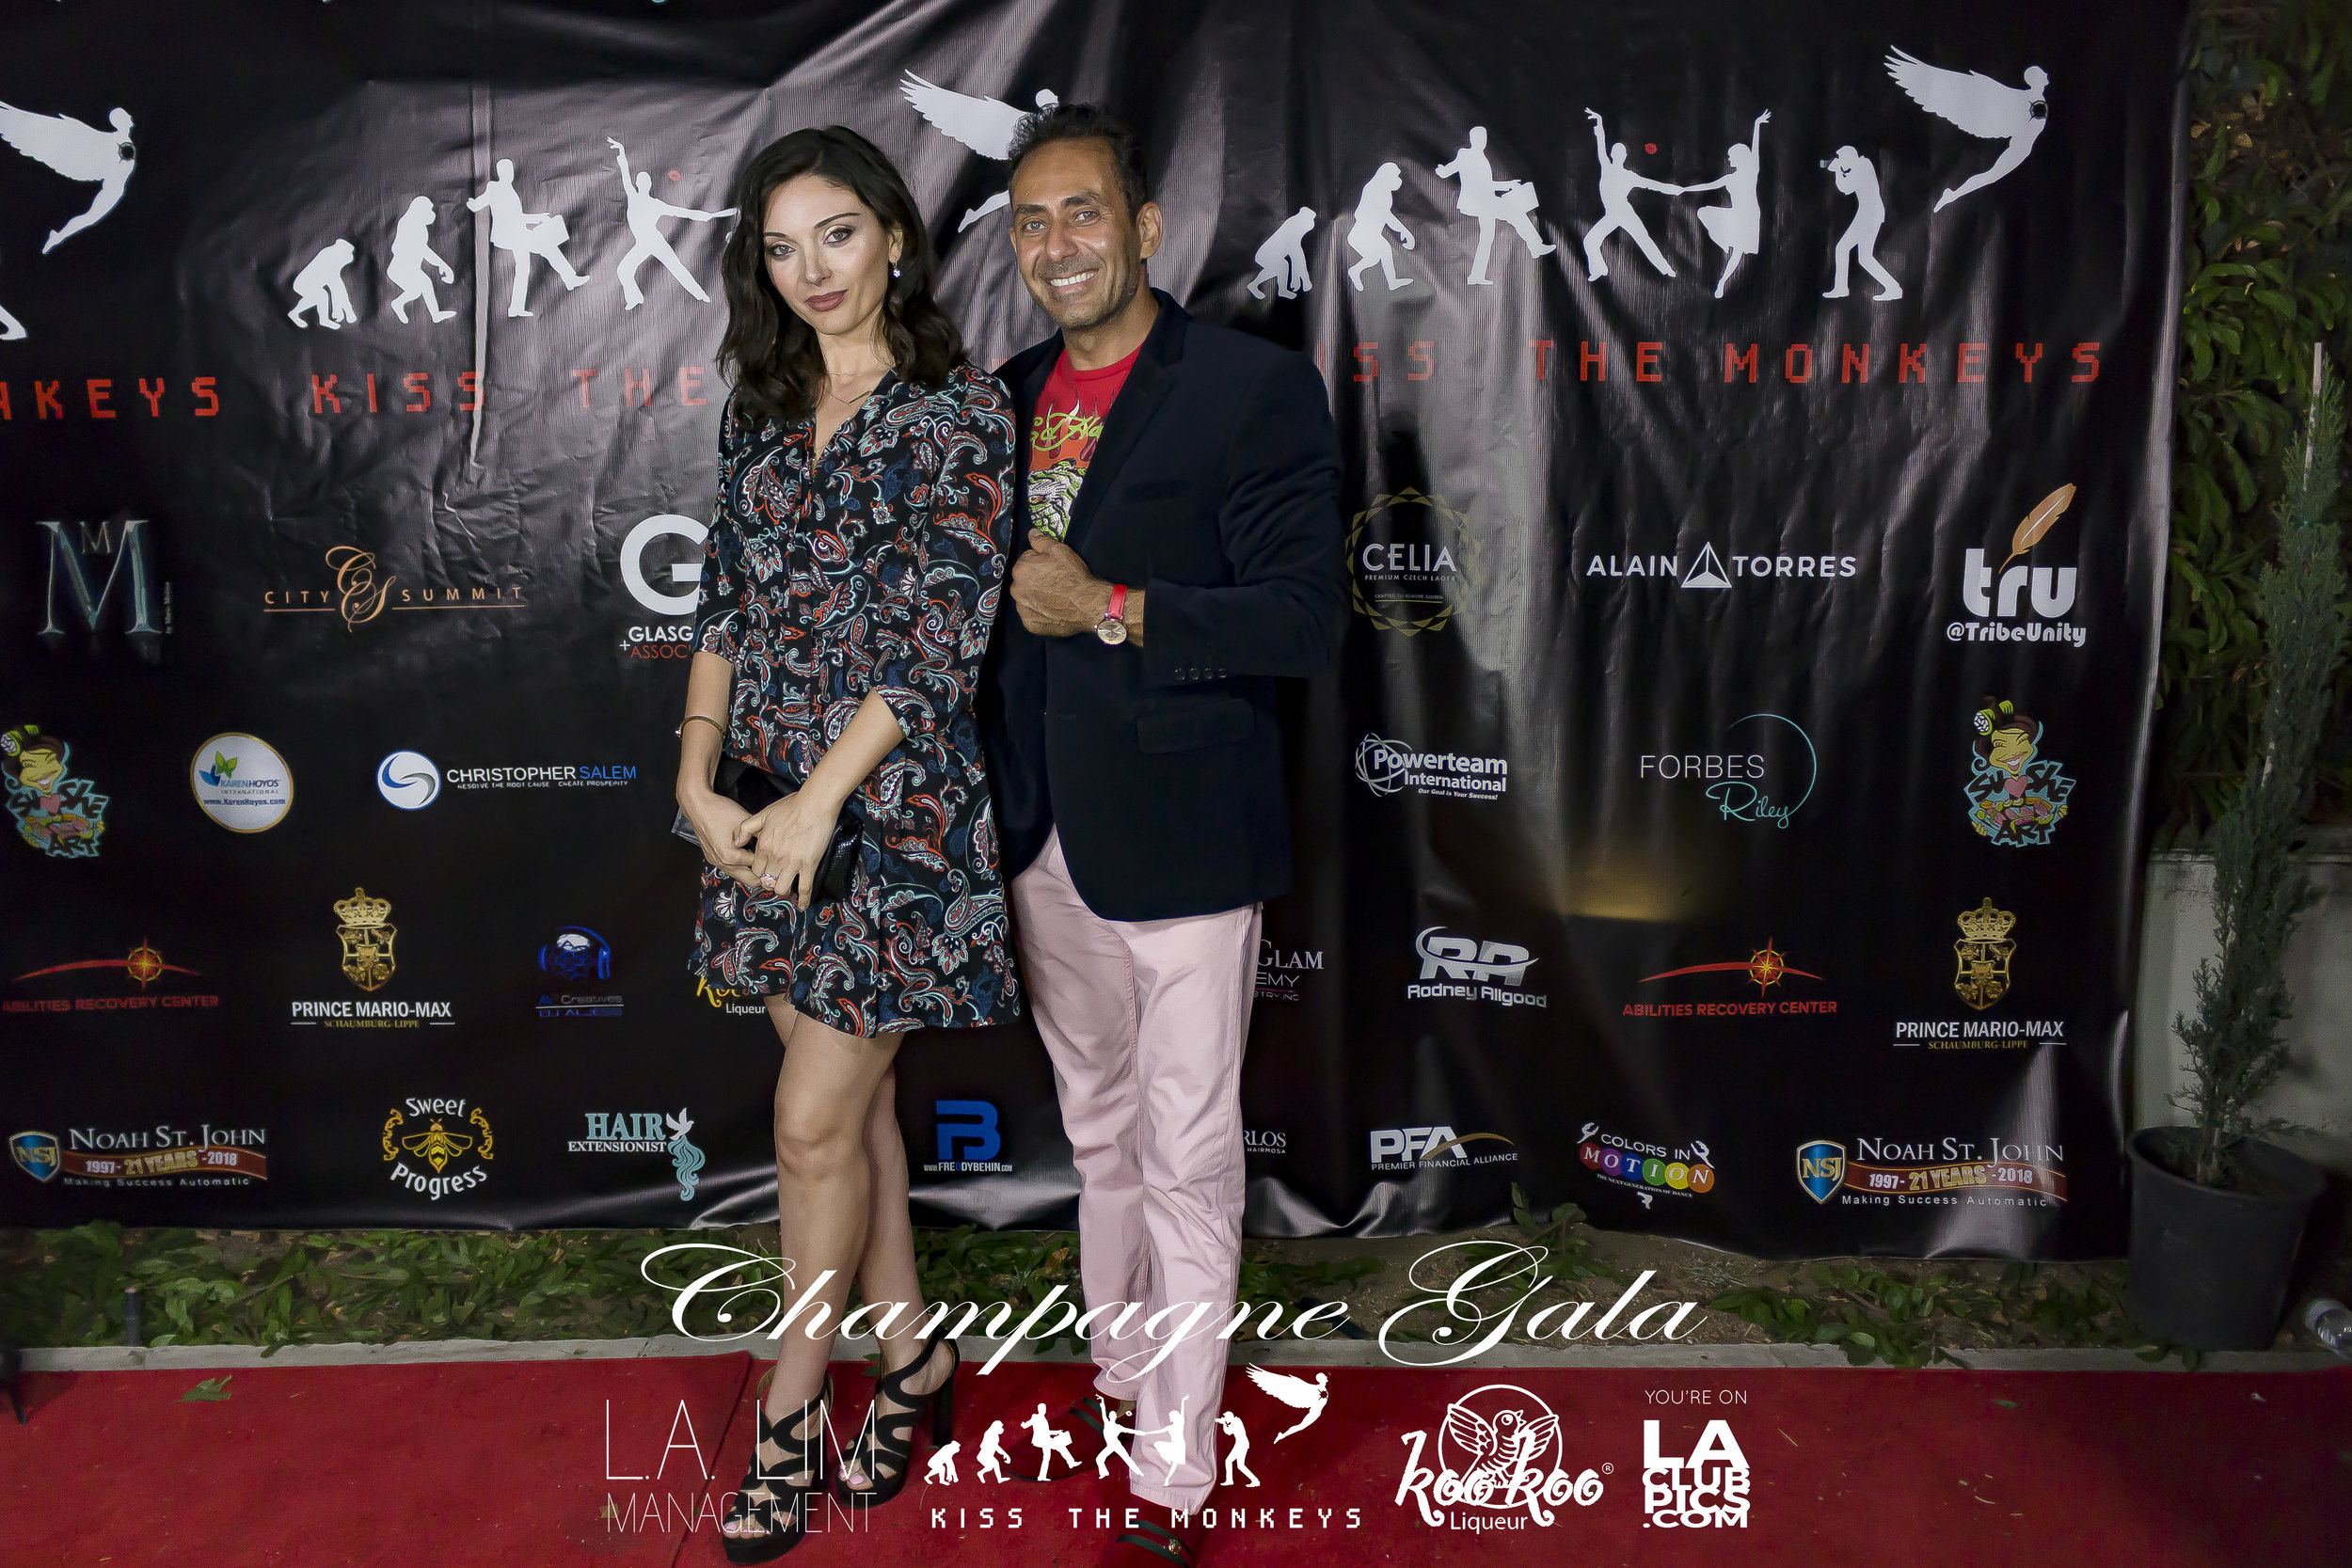 Kiss The Monkeys - Champagne Gala - 07-21-18_48.jpg